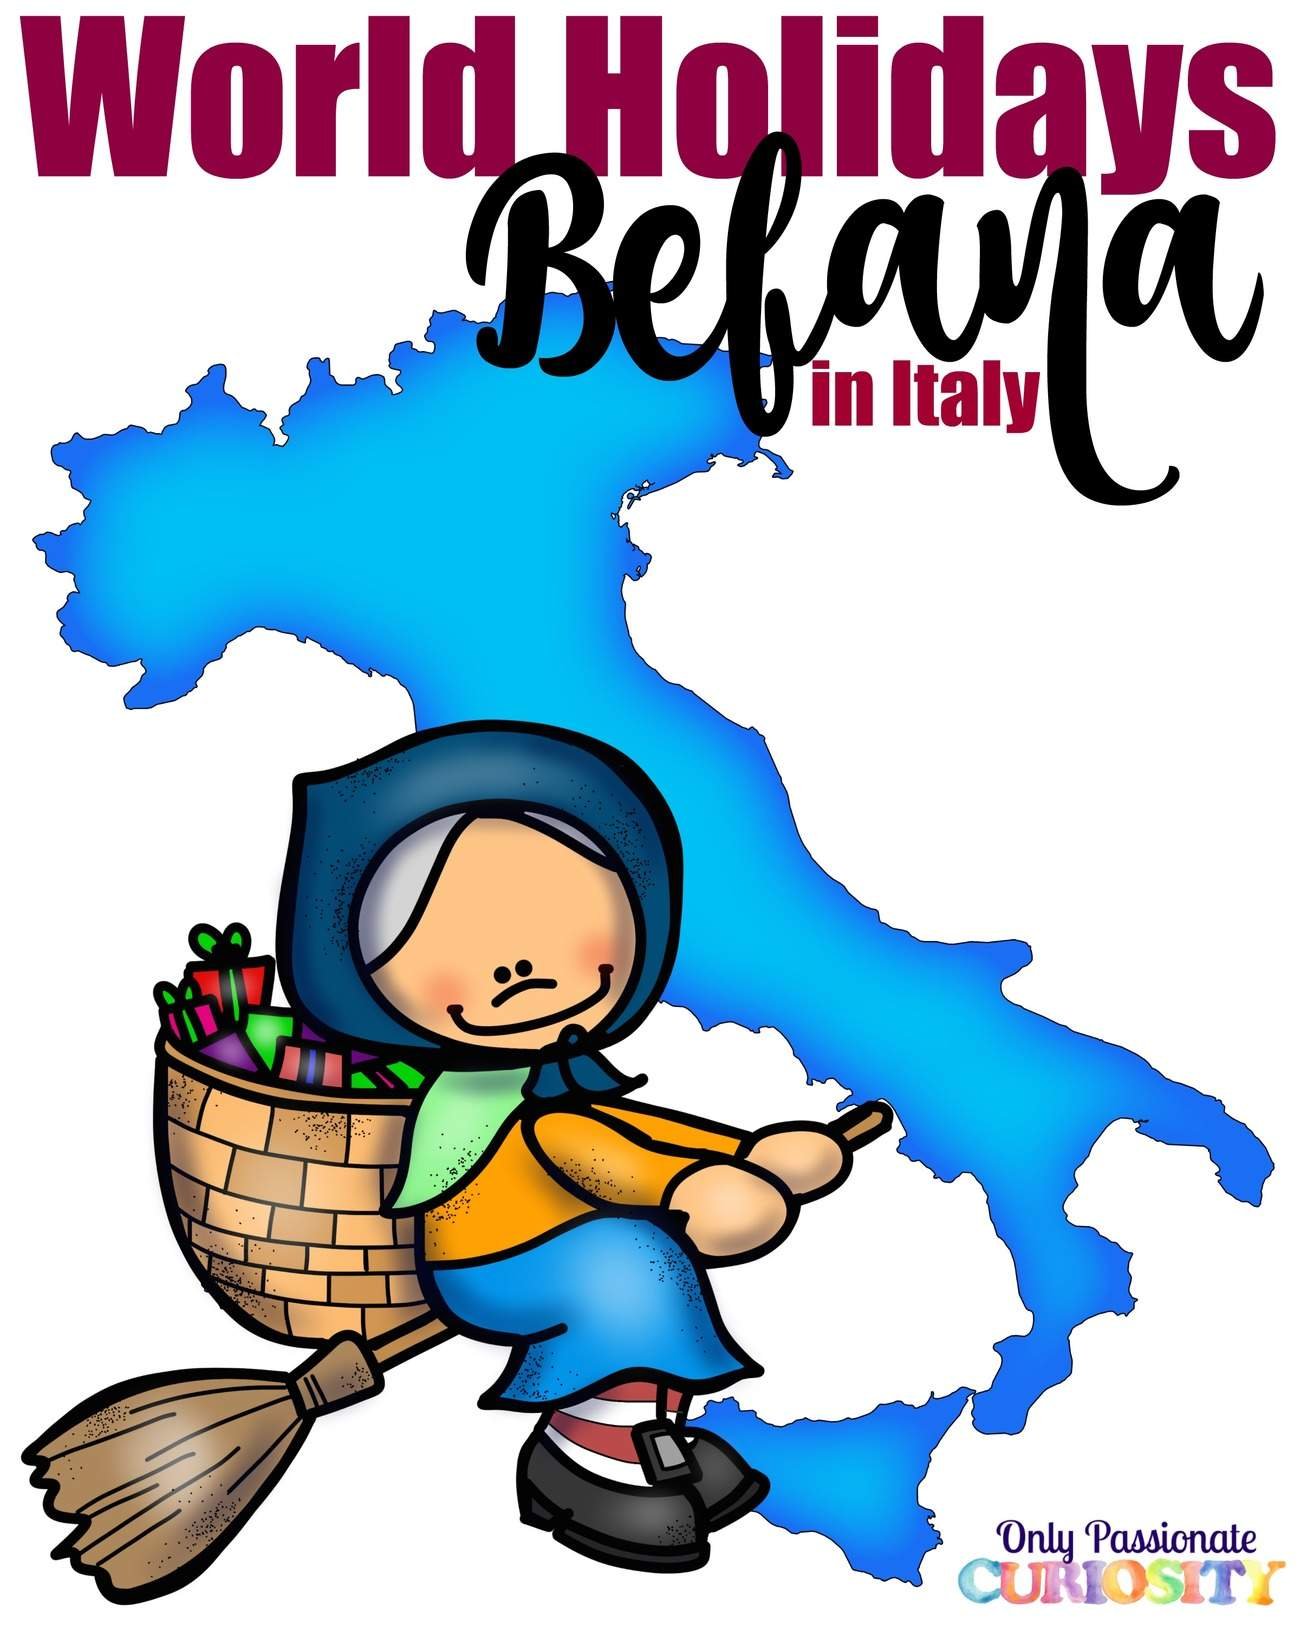 World Traditions: Befana in Italy